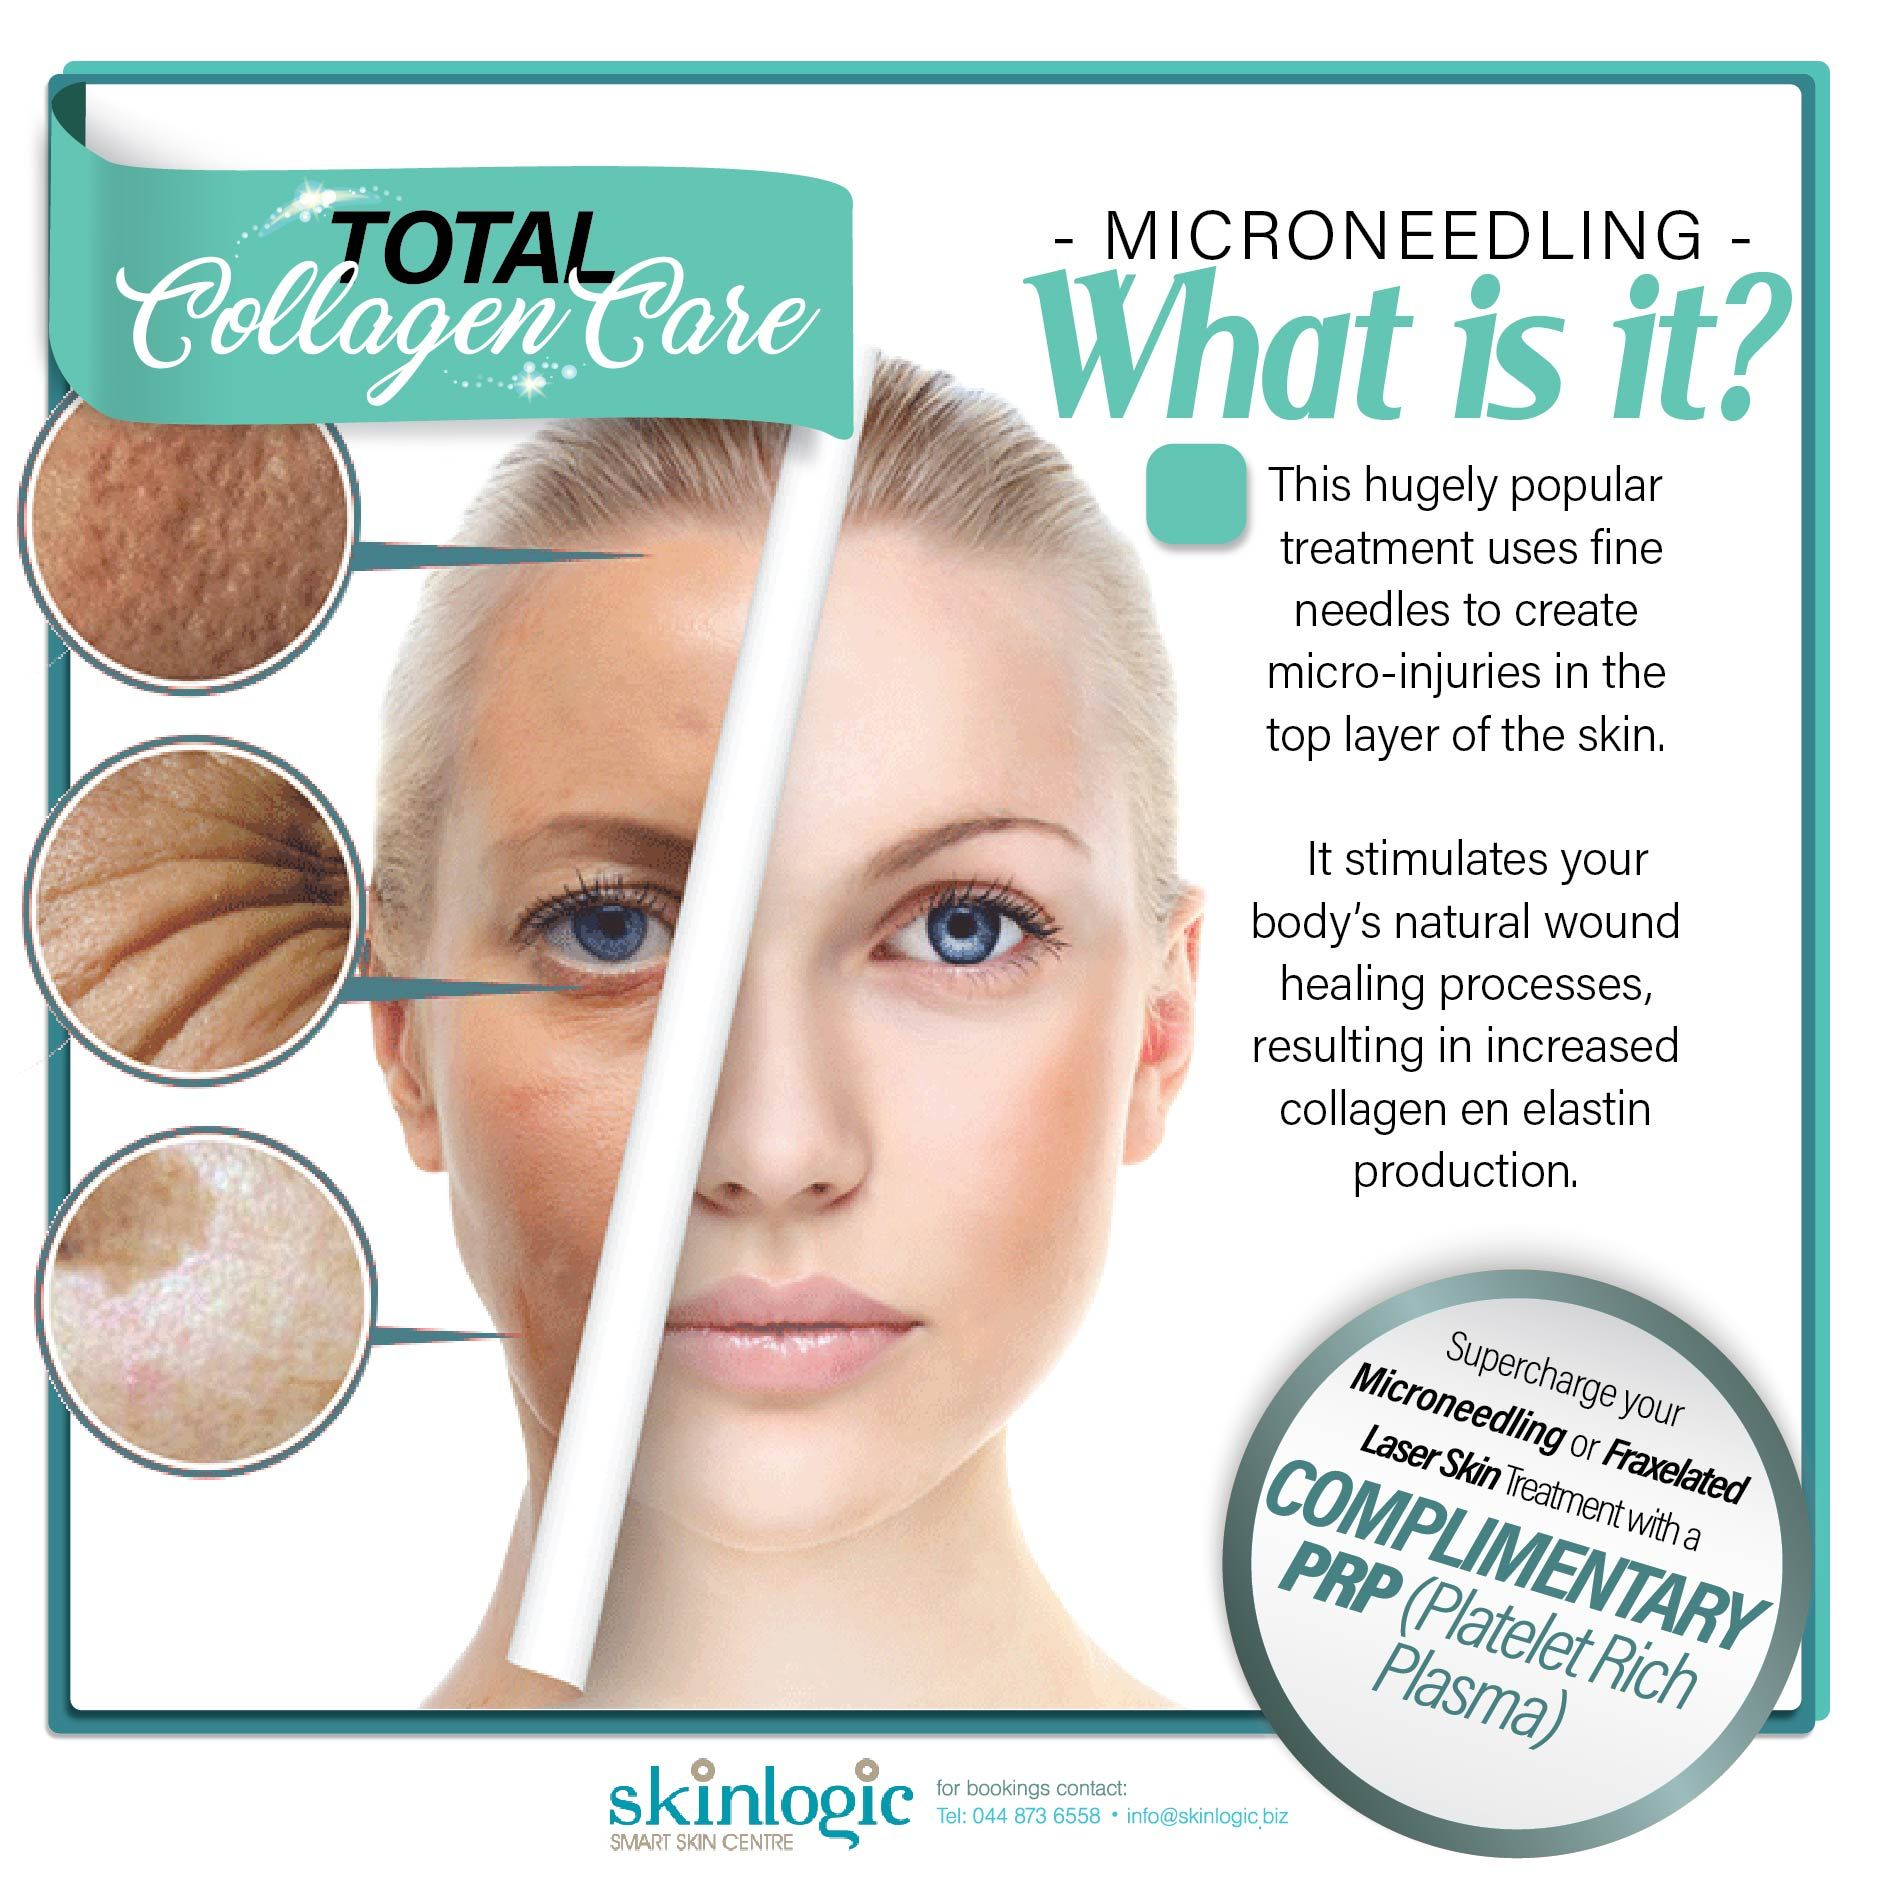 #Microneedling What is it? This hugely popular treatment uses fine needles to create micro-injuries in the top layer of the #skin. It stimulates your body's natural wound healing processes, resulting in increased #collagen en elastin production. #SKinlogic #Aesthetics #SkinTreatments #Aging #Beauty